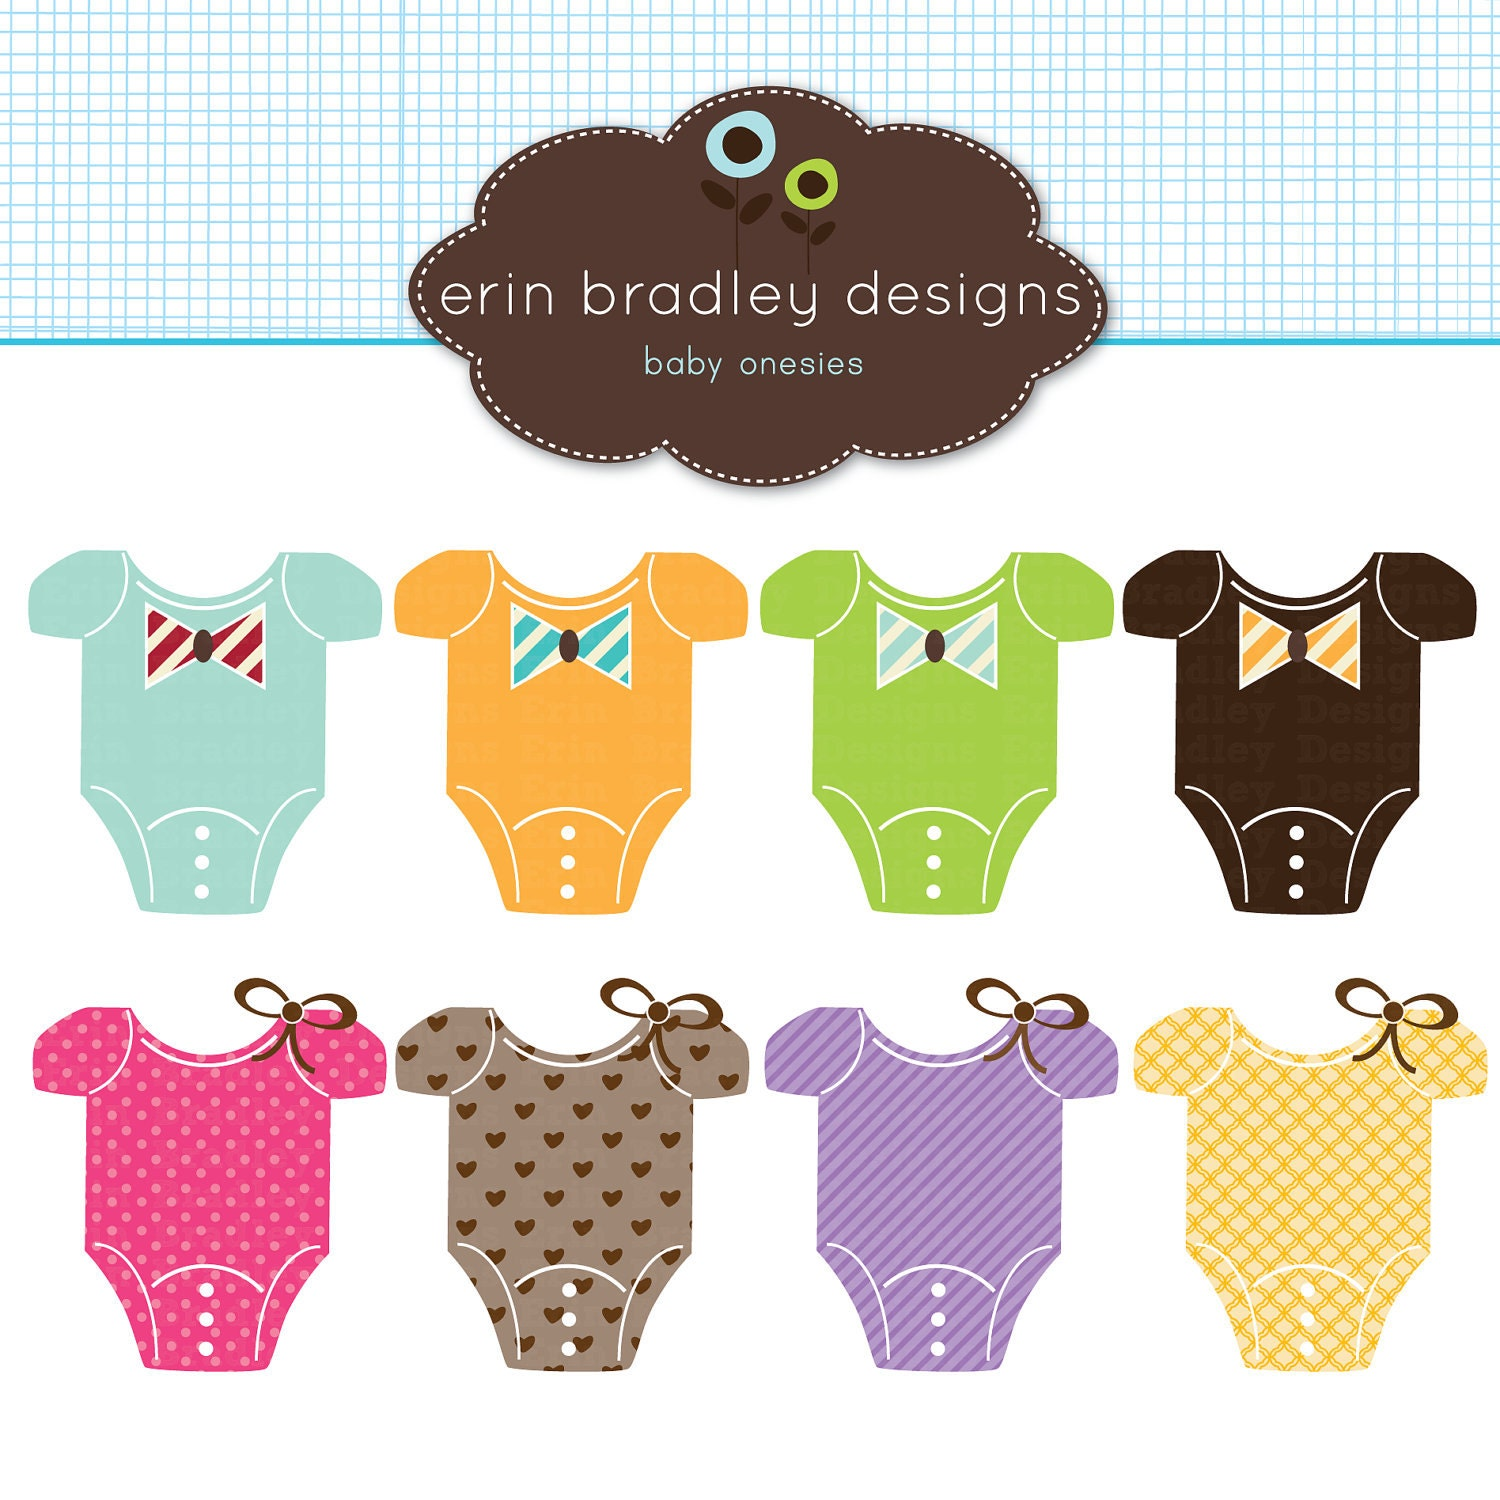 girl babies clipart images